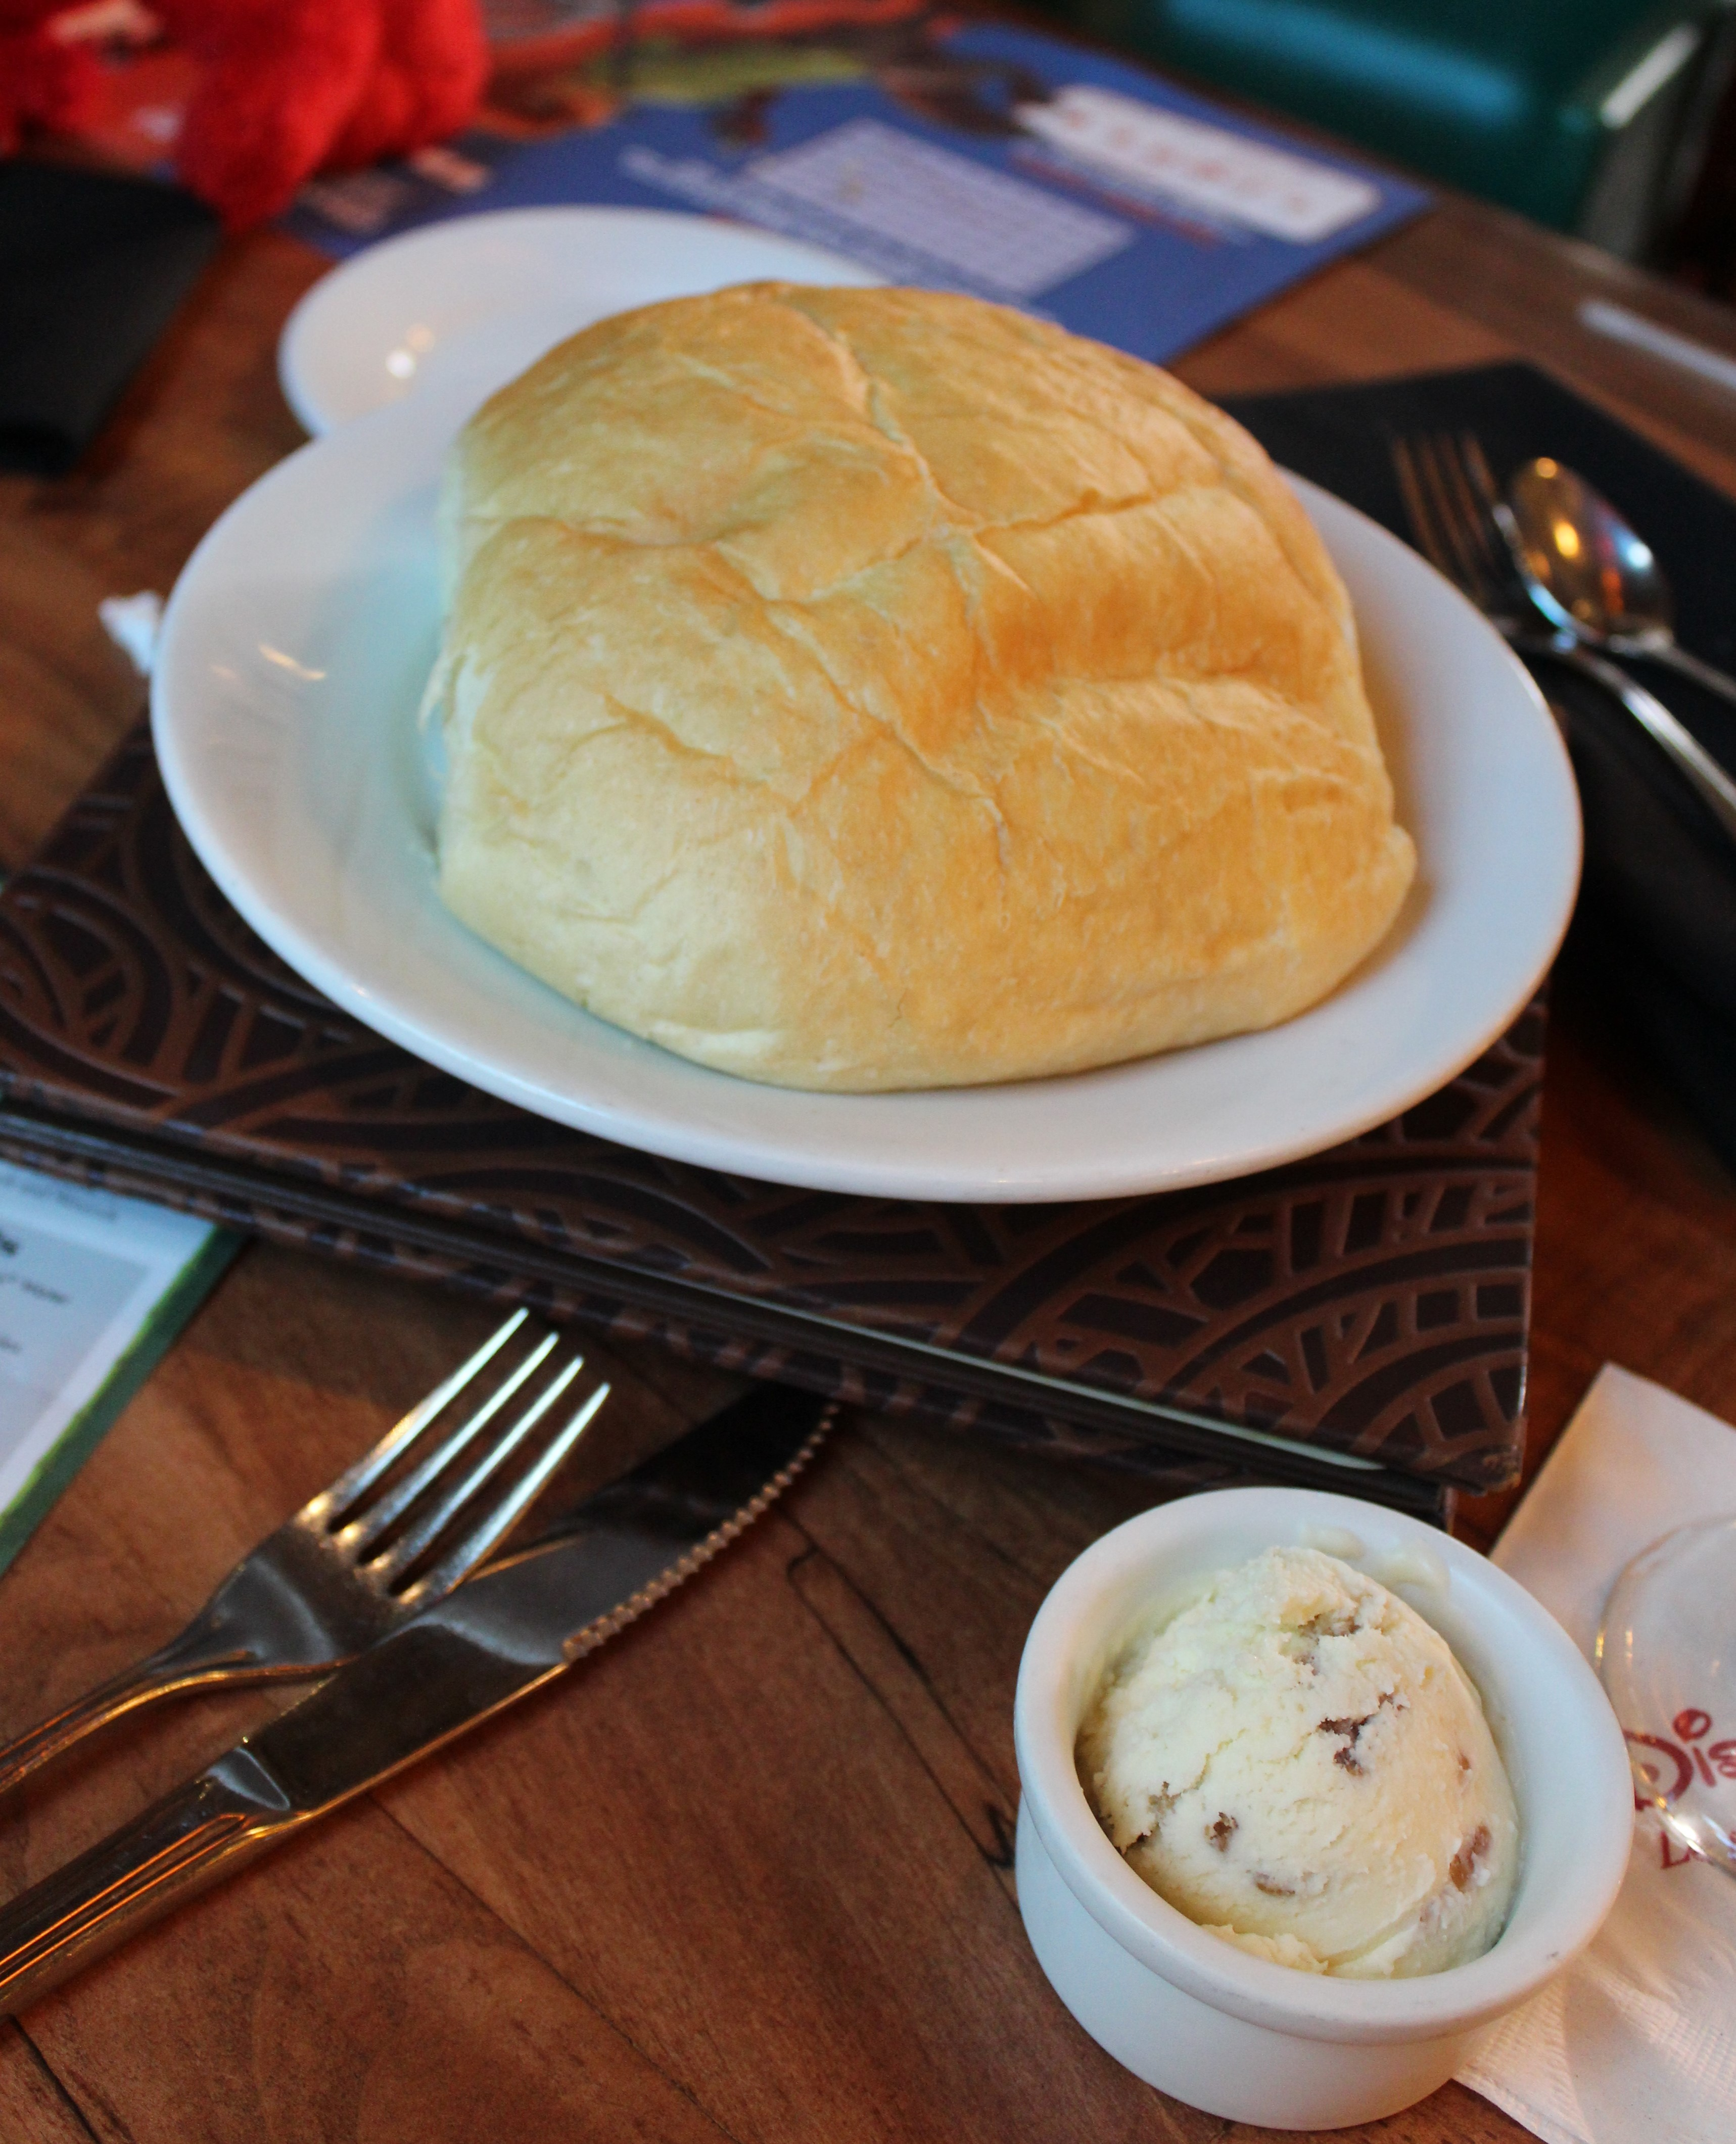 Bread roll with butter on the side